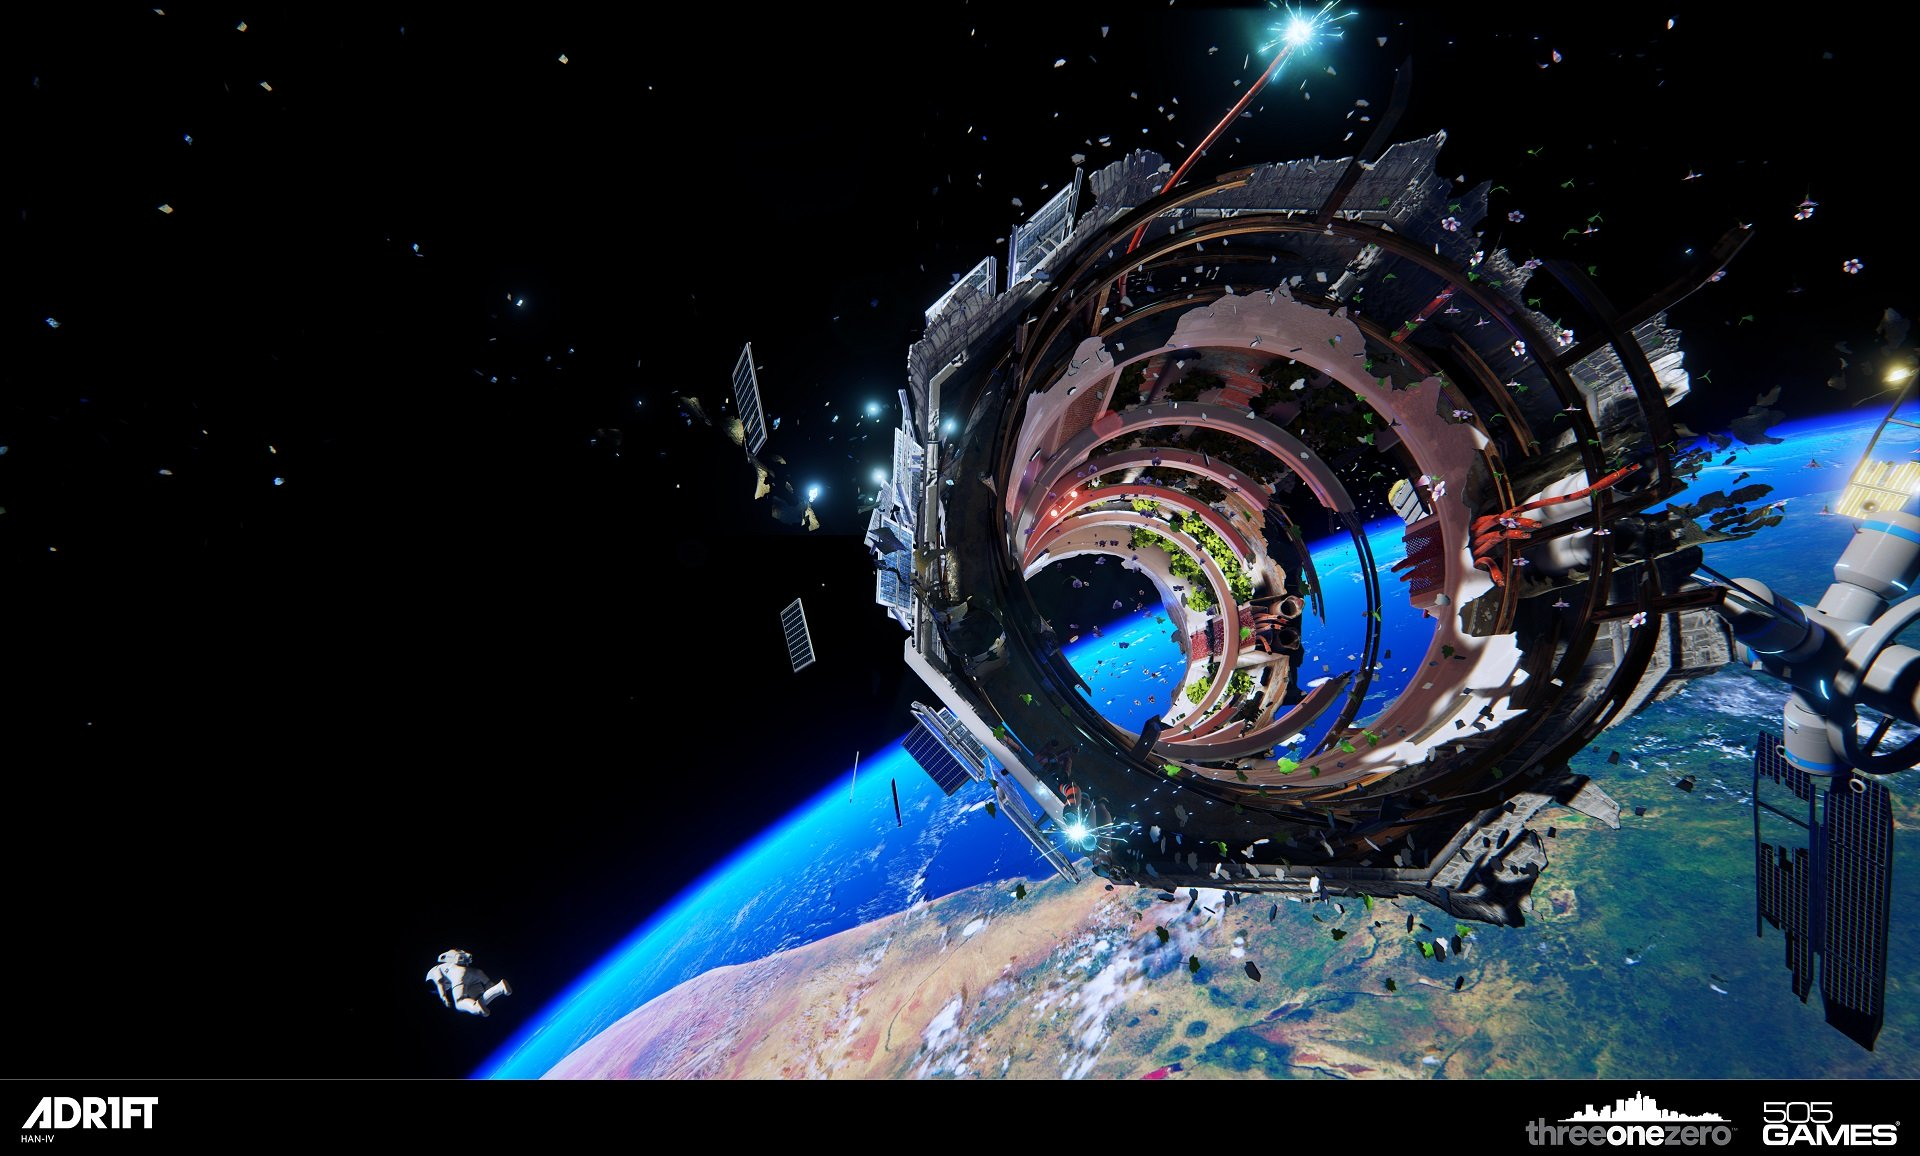 ADR1FT Screenshot 06